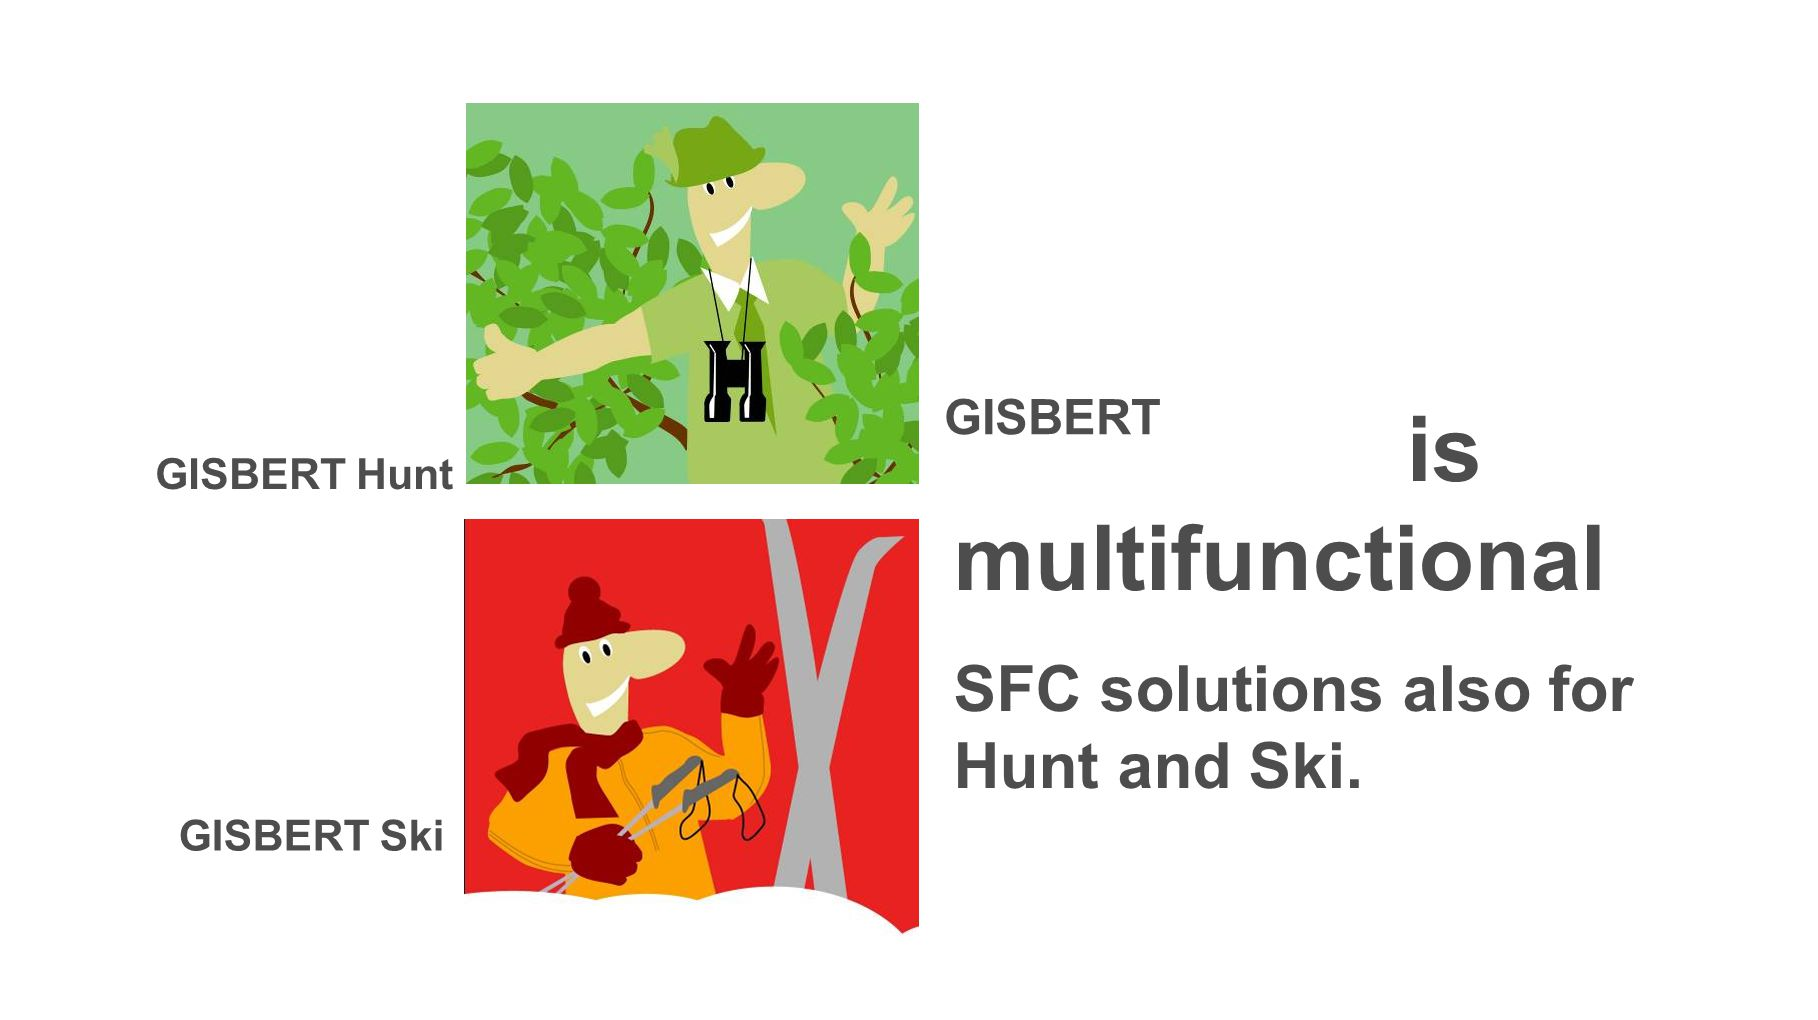 is multifunctional SFC solutions also for Hunt and Ski. GISBERT Ski GISBERT Hunt GISBERT